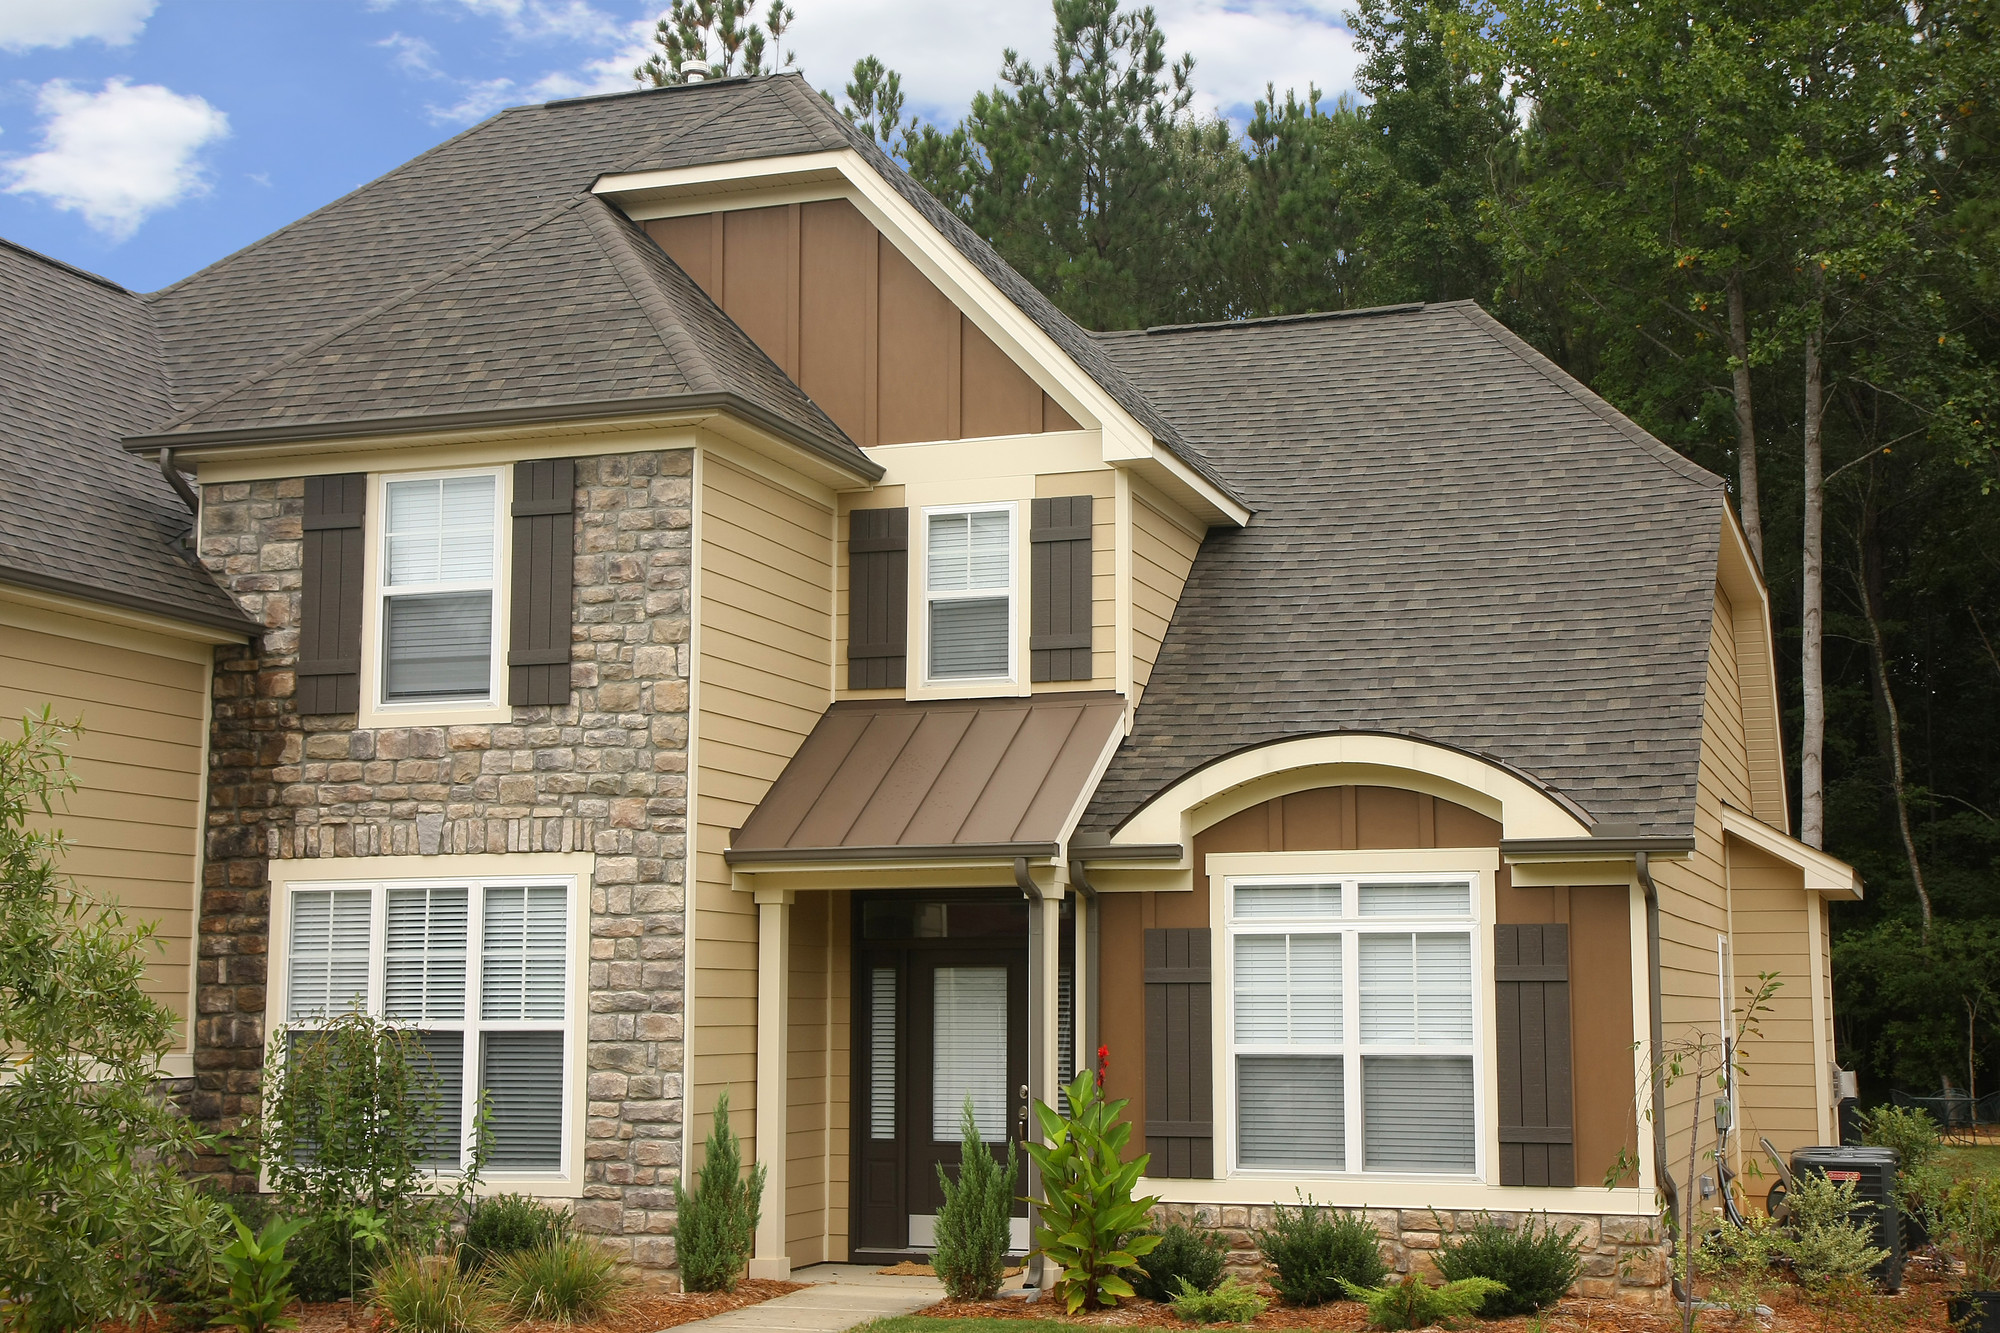 Types of house siding of home siding wood different moderate cost for wood types of siding for Types of stone for home exterior